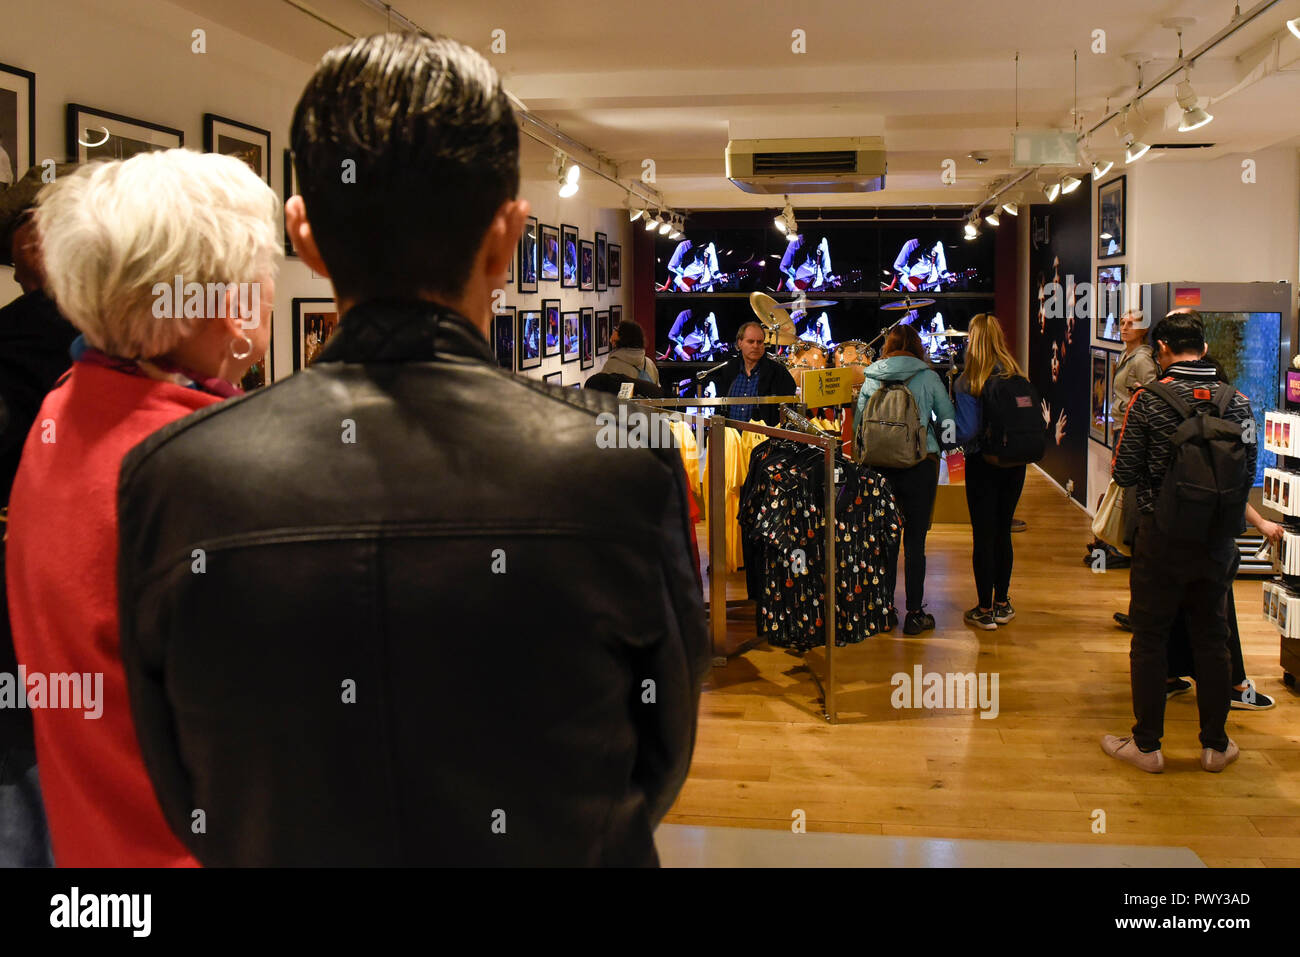 London, UK.  18 October 2018.  Visitors to the Queen pop-up shop which has opened in Carnaby Street.  Coinciding with the release next week of the movie 'Bohemian Rhapsody', the shop offers Queen music fans memorabilia, a display of stage costumes as well as archived Queen performance footage. Credit: Stephen Chung / Alamy Live News - Stock Image